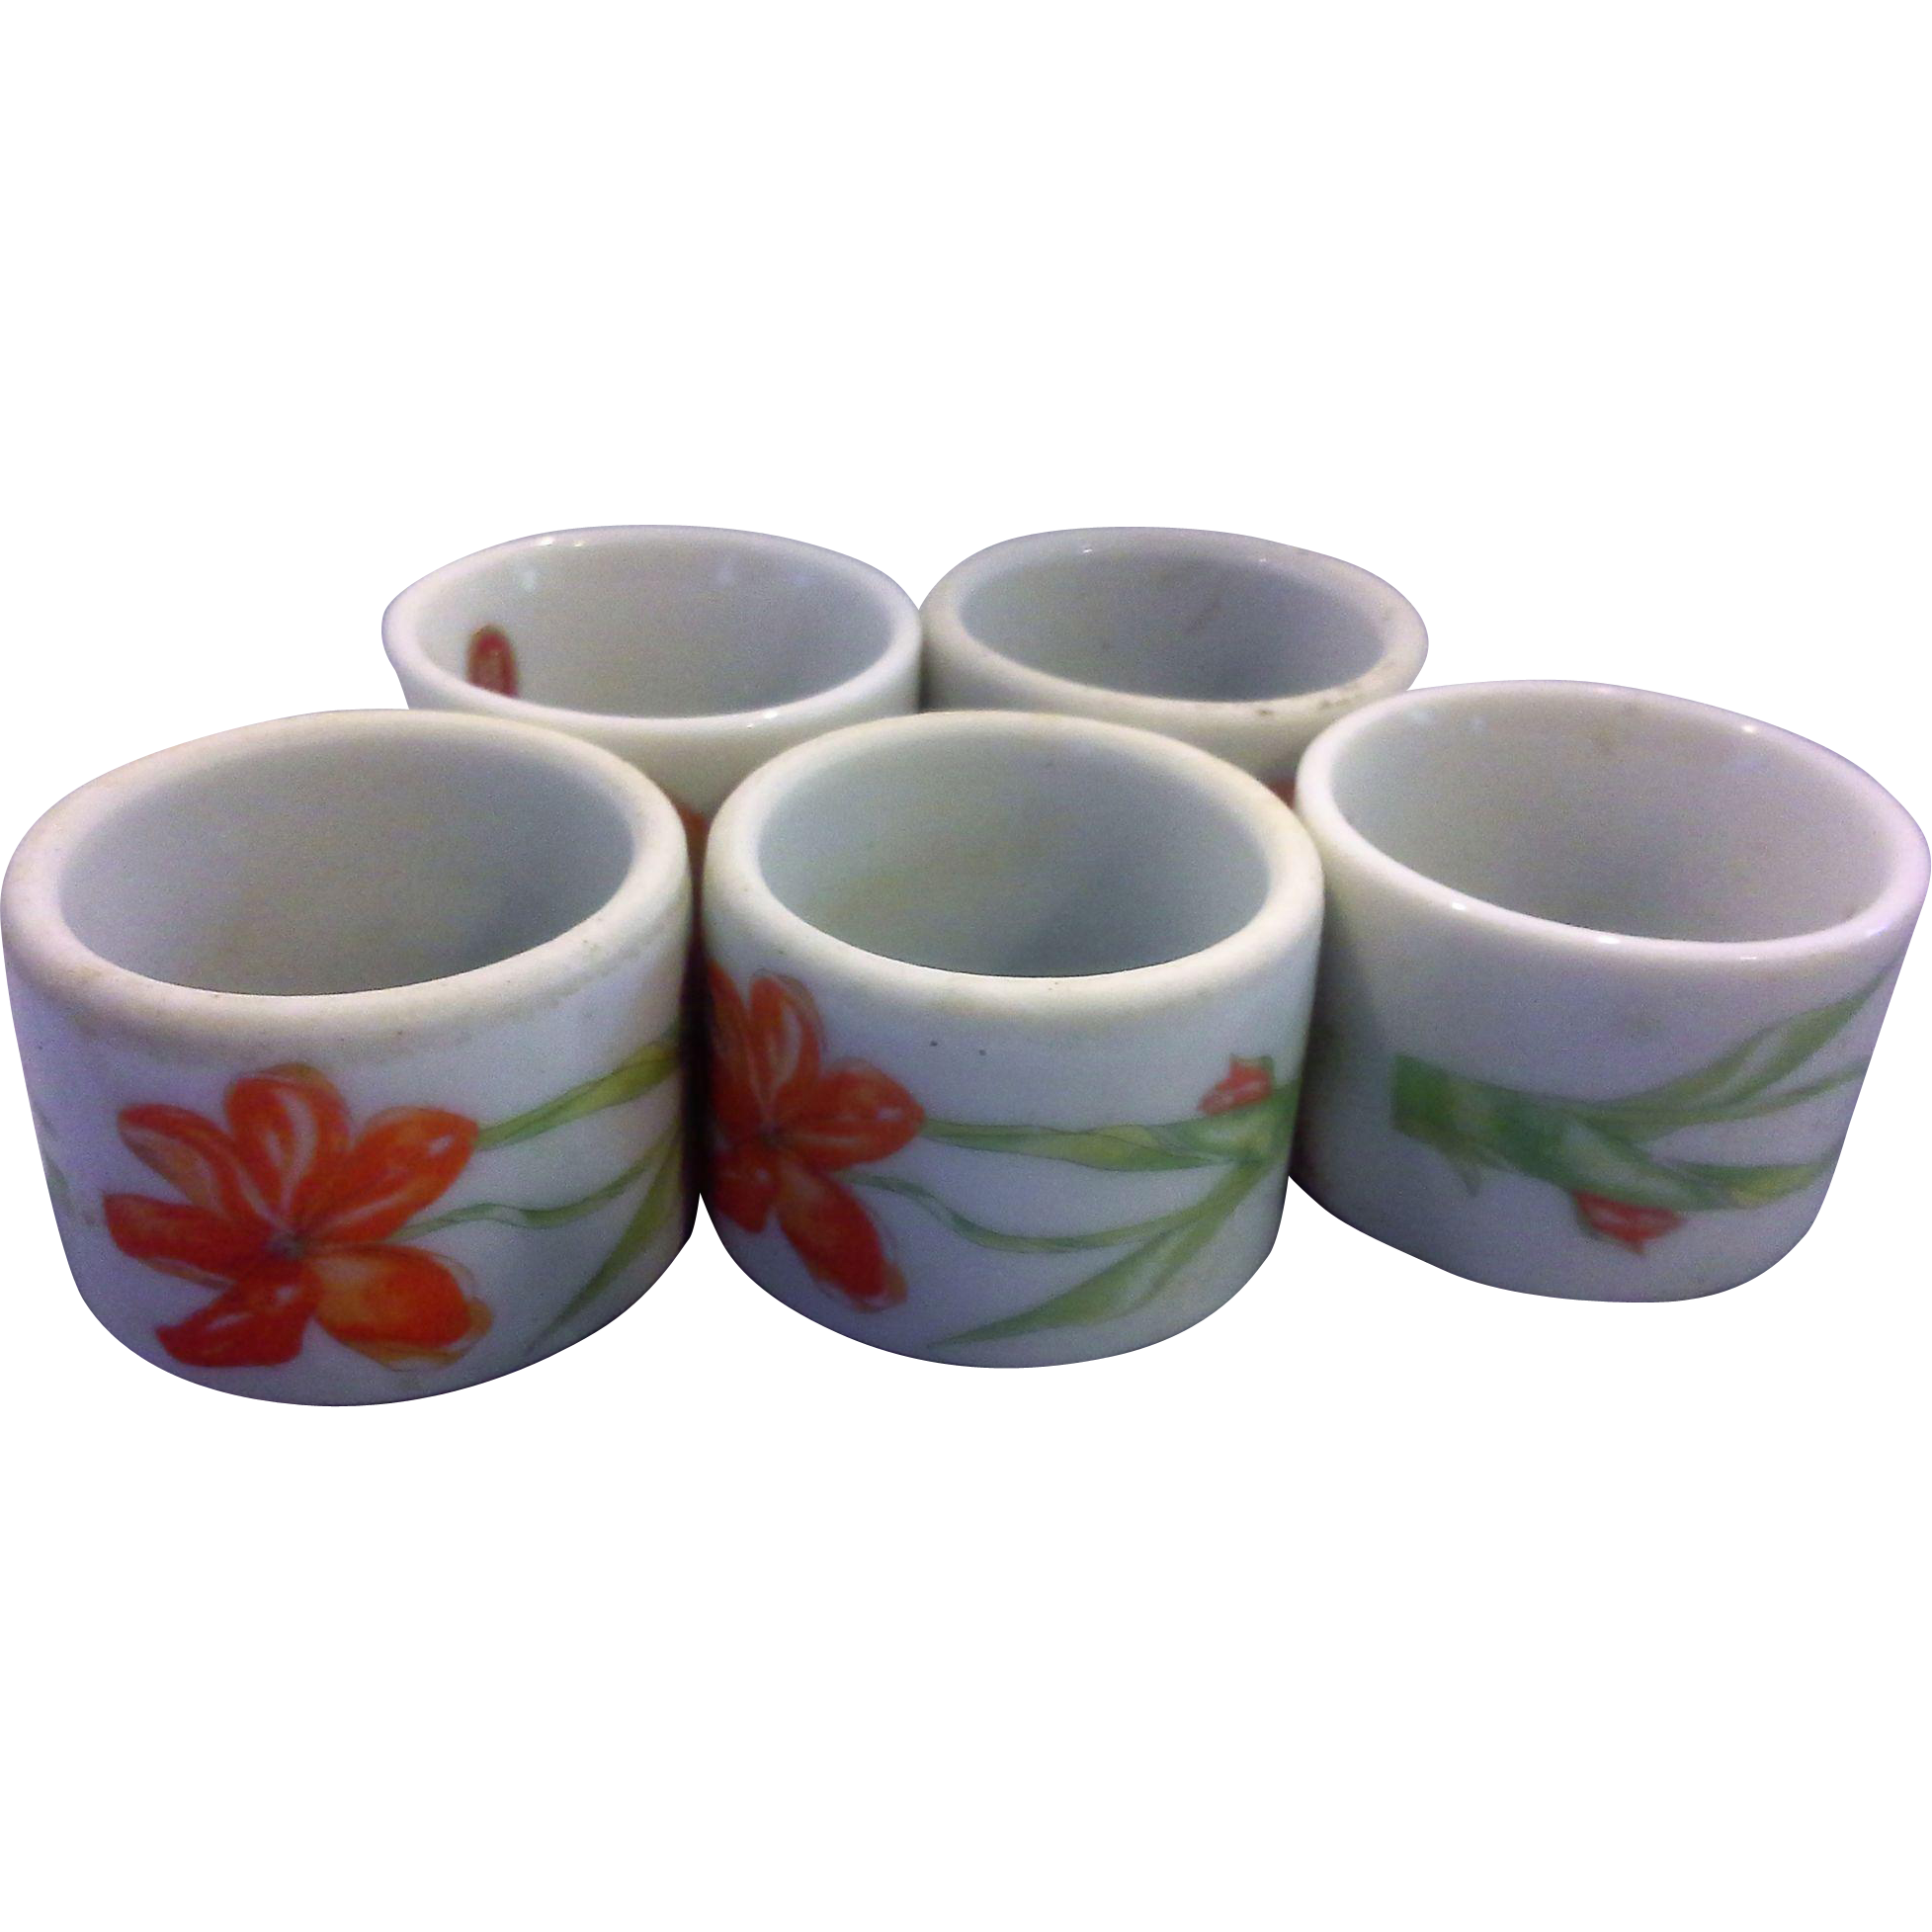 White Porcelain Napkin Rings Made in Japan Orange Flowers